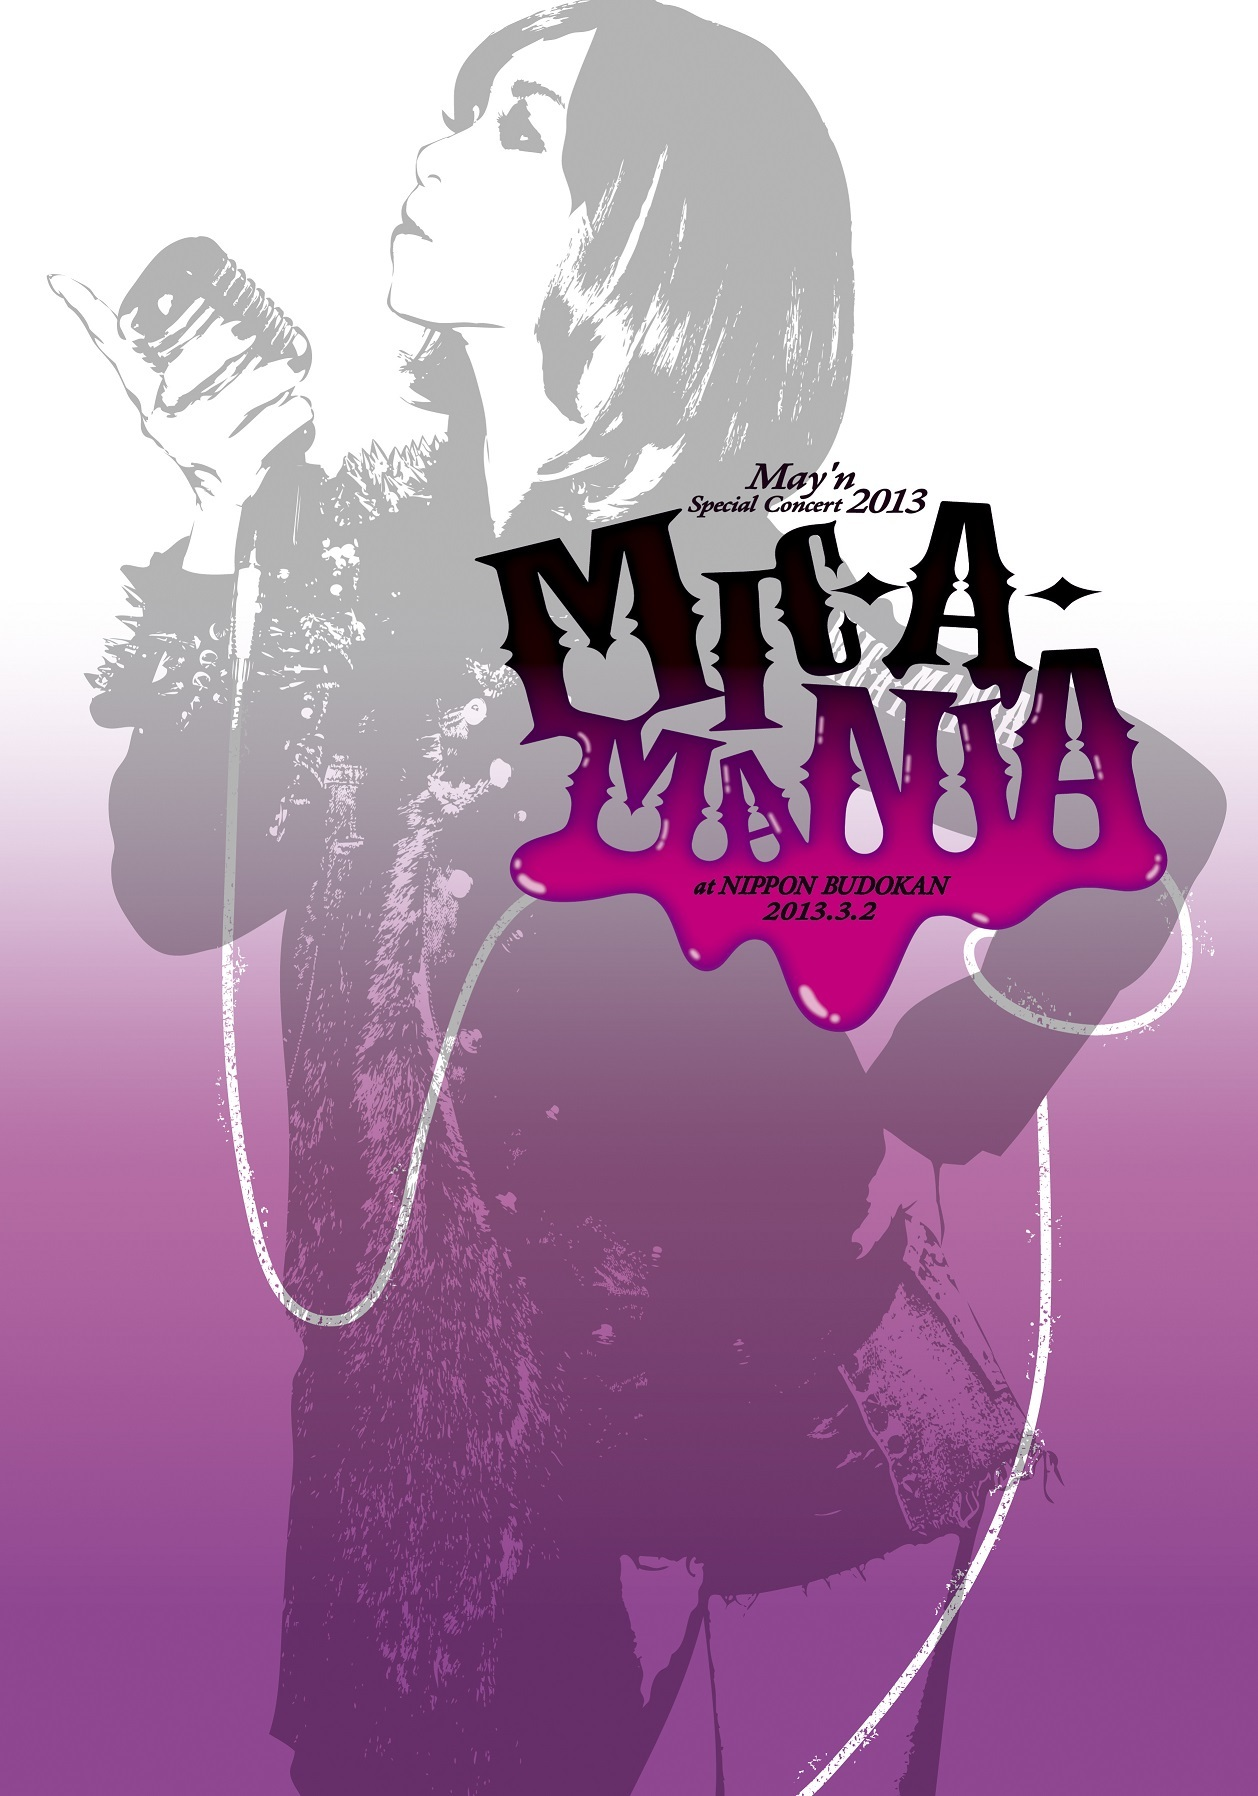 """May'n Special Concert 2013 at 日本武道館 """"MIC-A-MANIA""""パンフレット"""